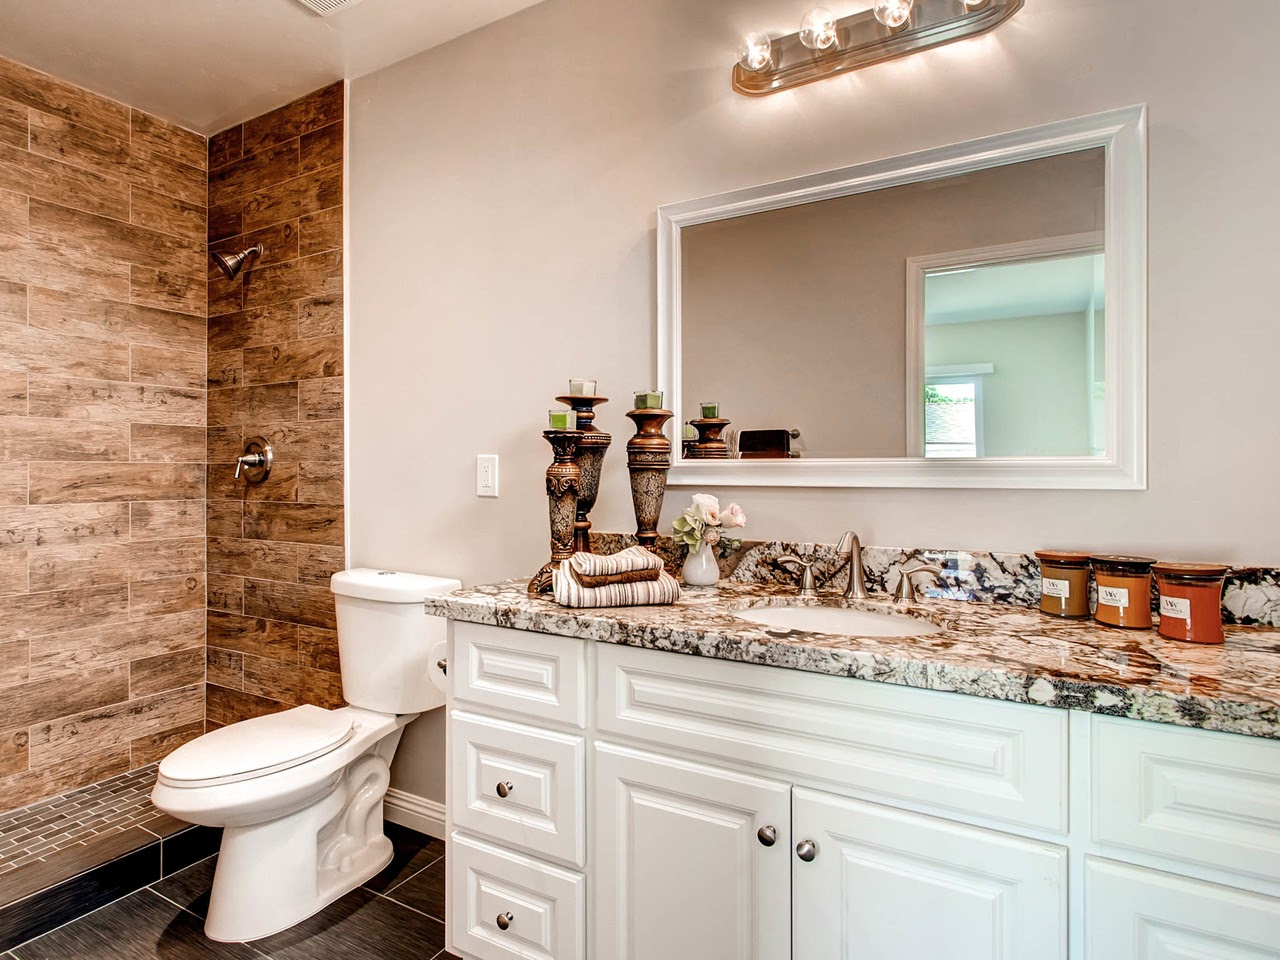 Home San Diego Remodeling And Home Improvement Company - Bathroom remodel chula vista